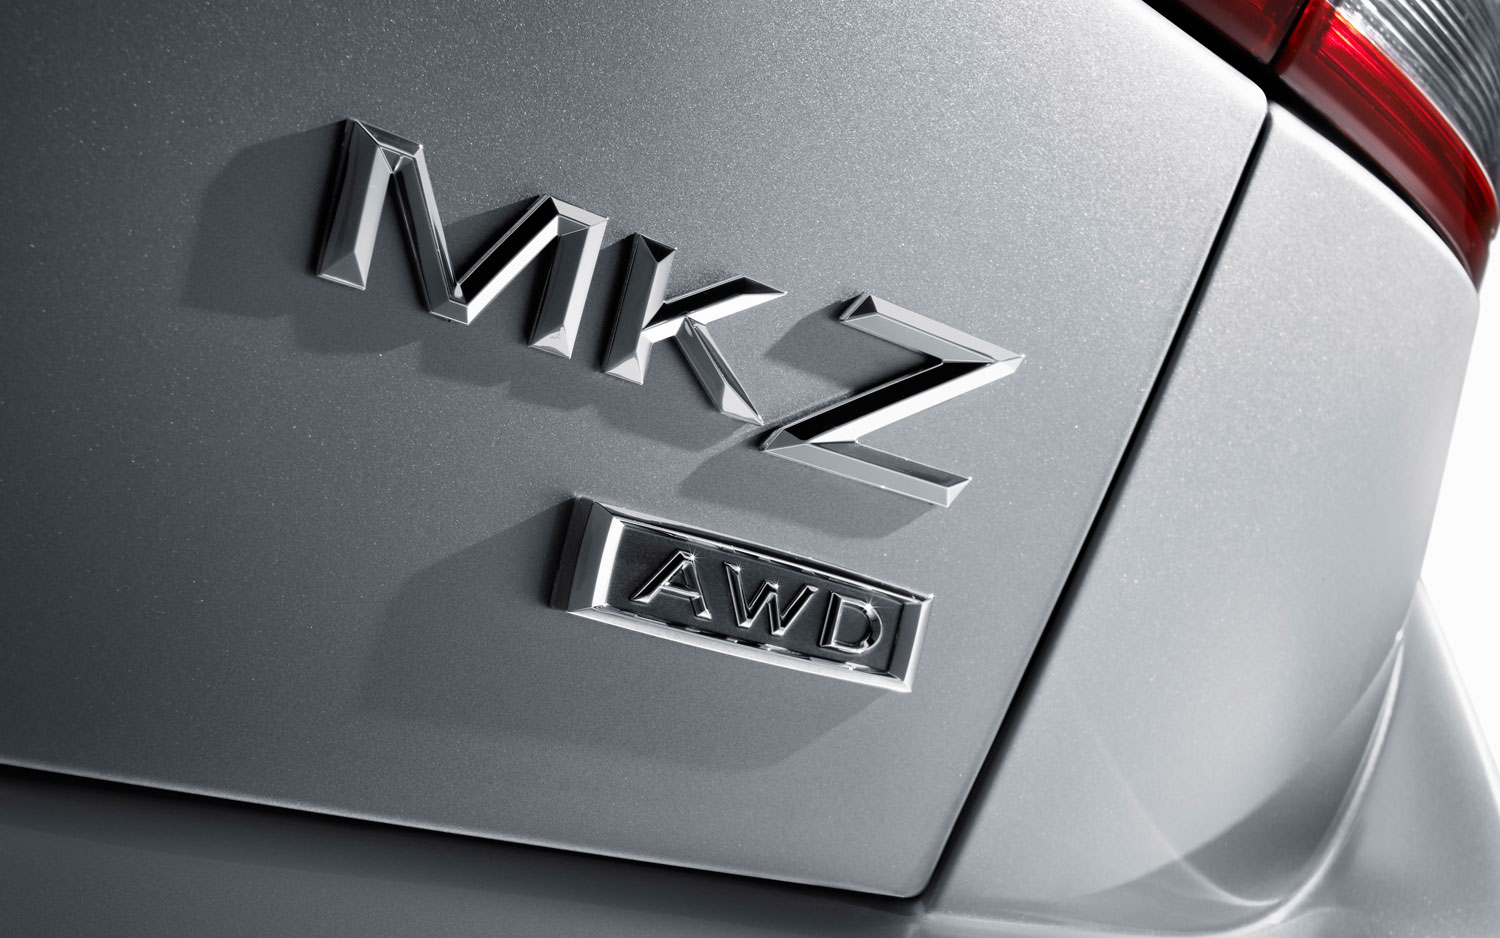 Lincoln Mkz Awd Badge1